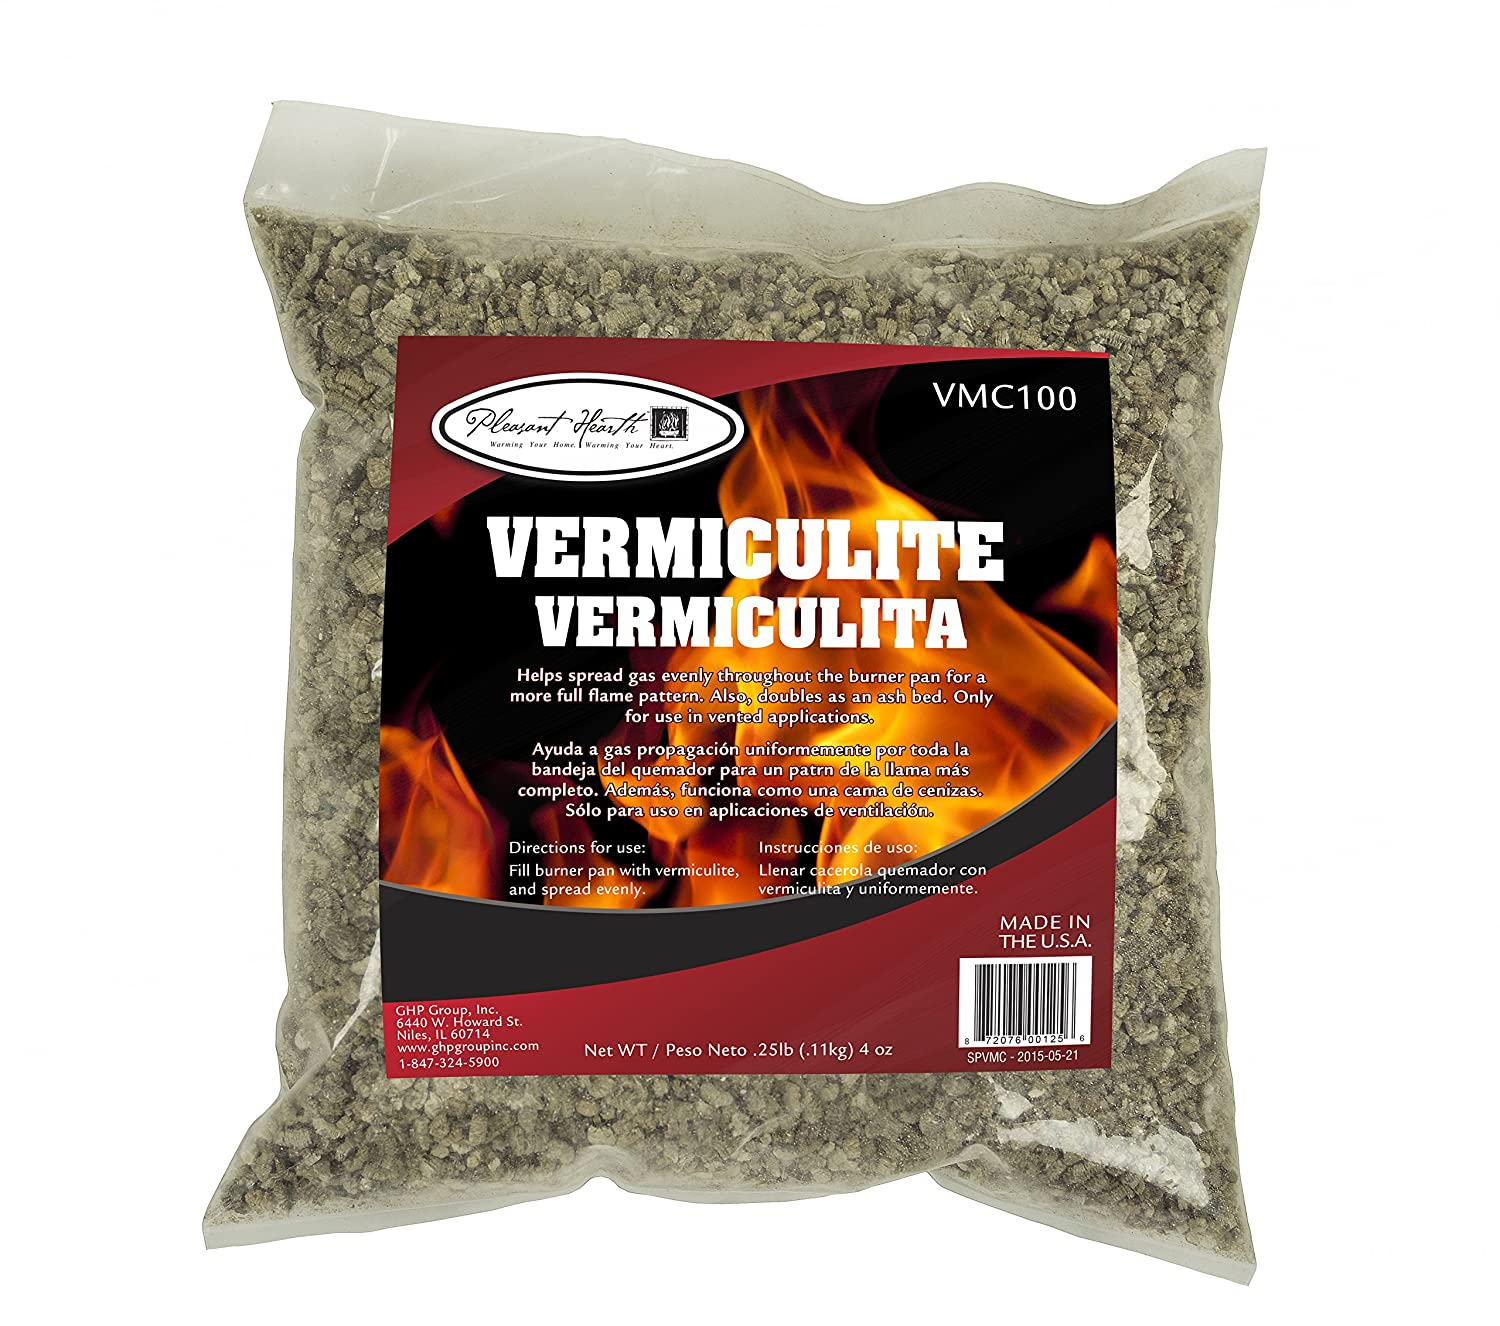 Amazon.com: Pleasant Hearth VMC100 Vermiculite Equipment, 4 oz: Home & Kitchen